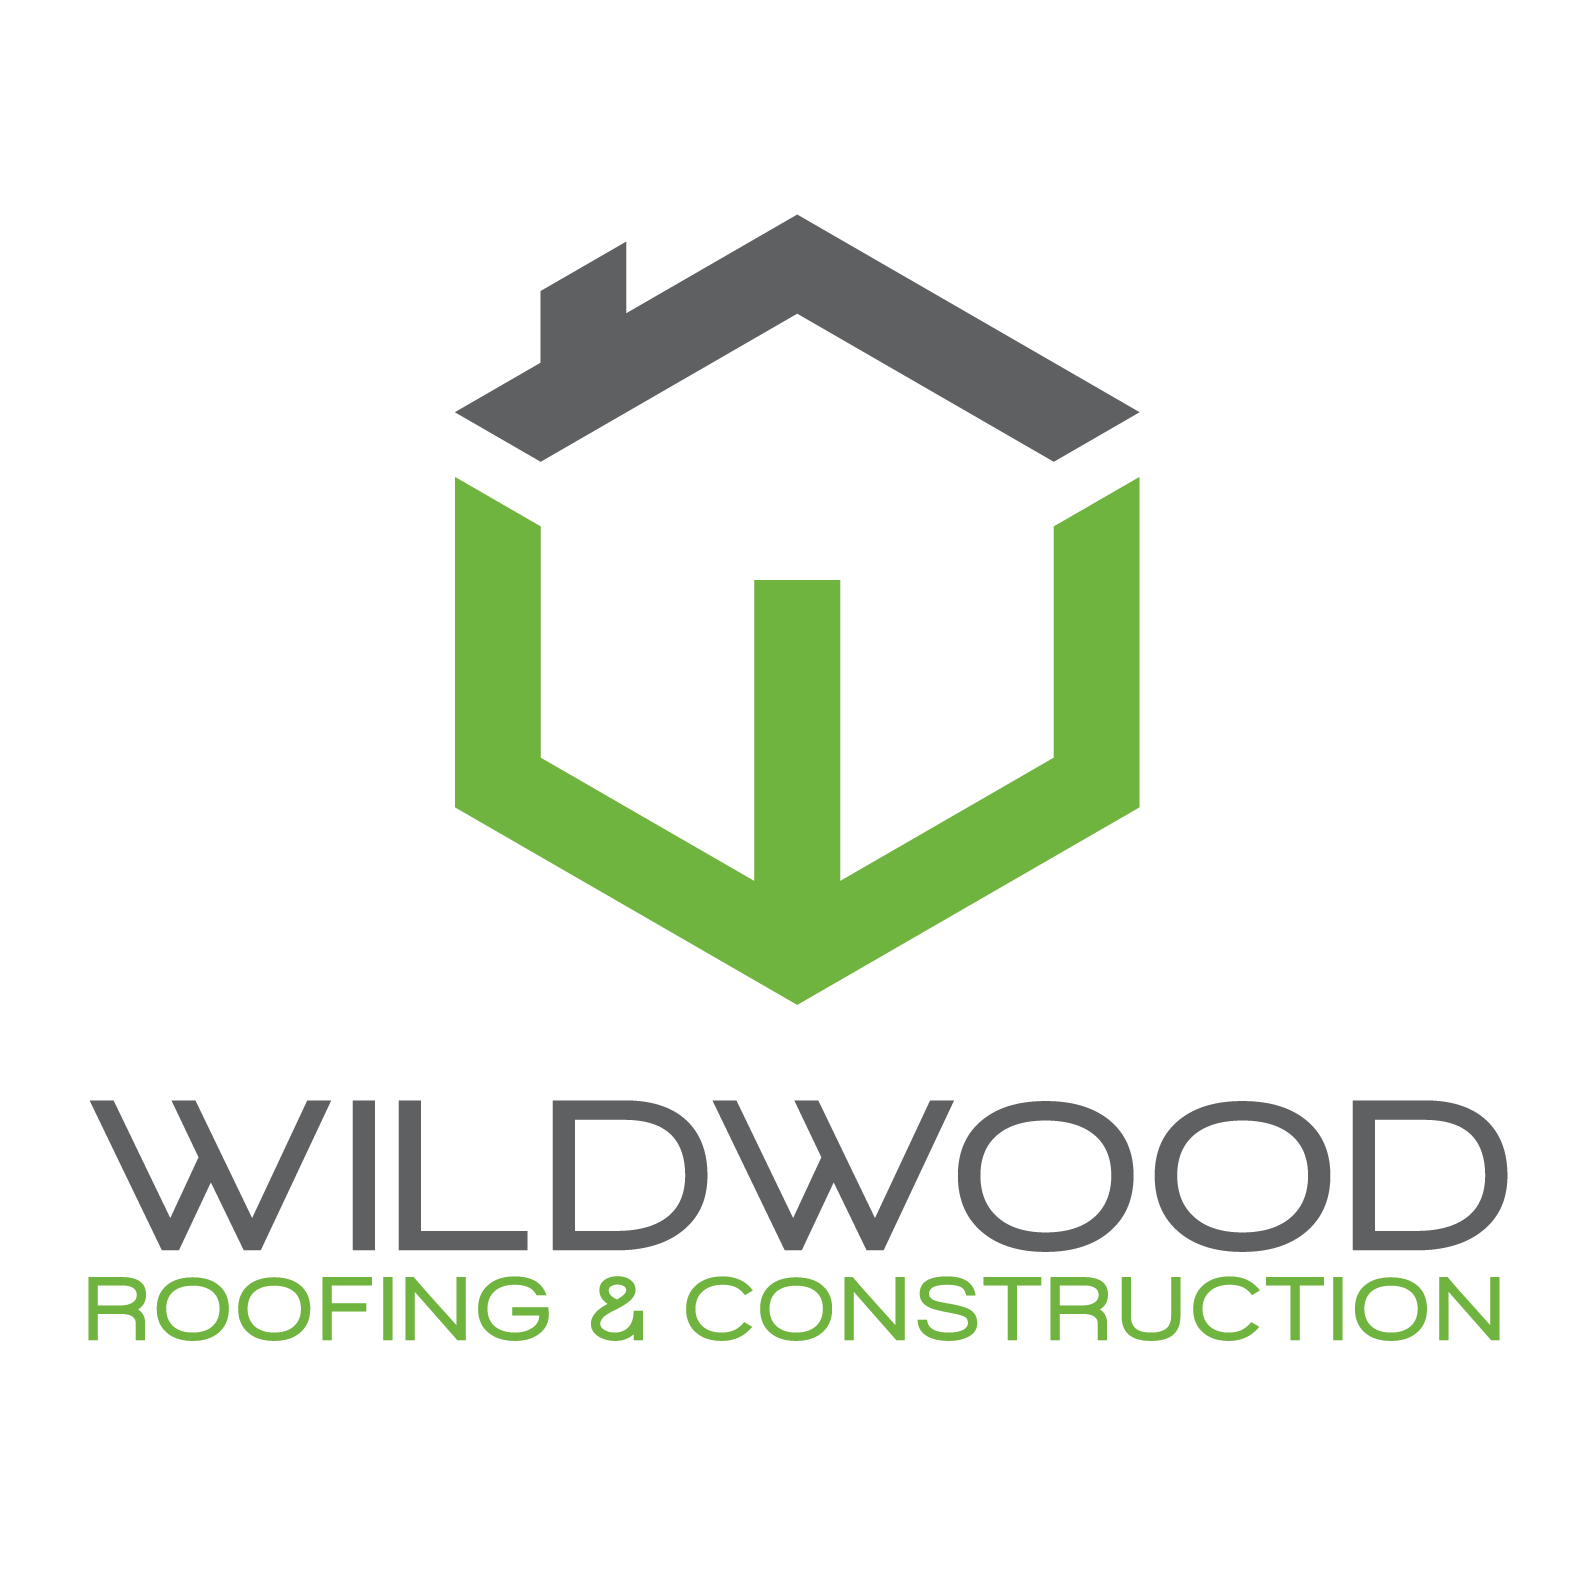 Wildwood Roofing & Construction